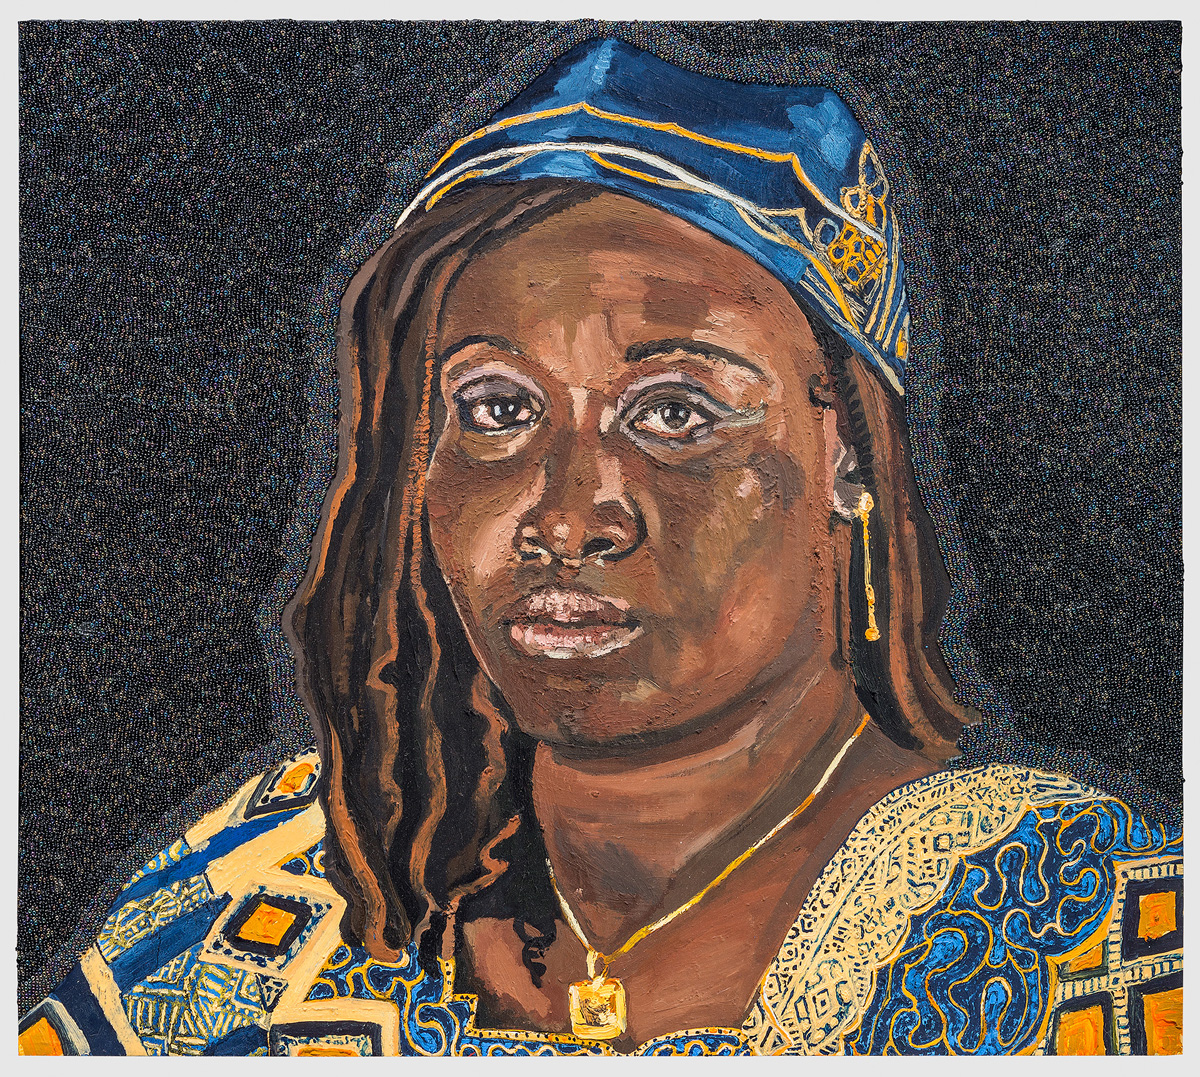 Icons From A Broken World:  Rebecca Kothia Kuany Mabior, oil paint, encaustic and glass beads on true gesso panel, 18 inches by 24 inches, 2014.